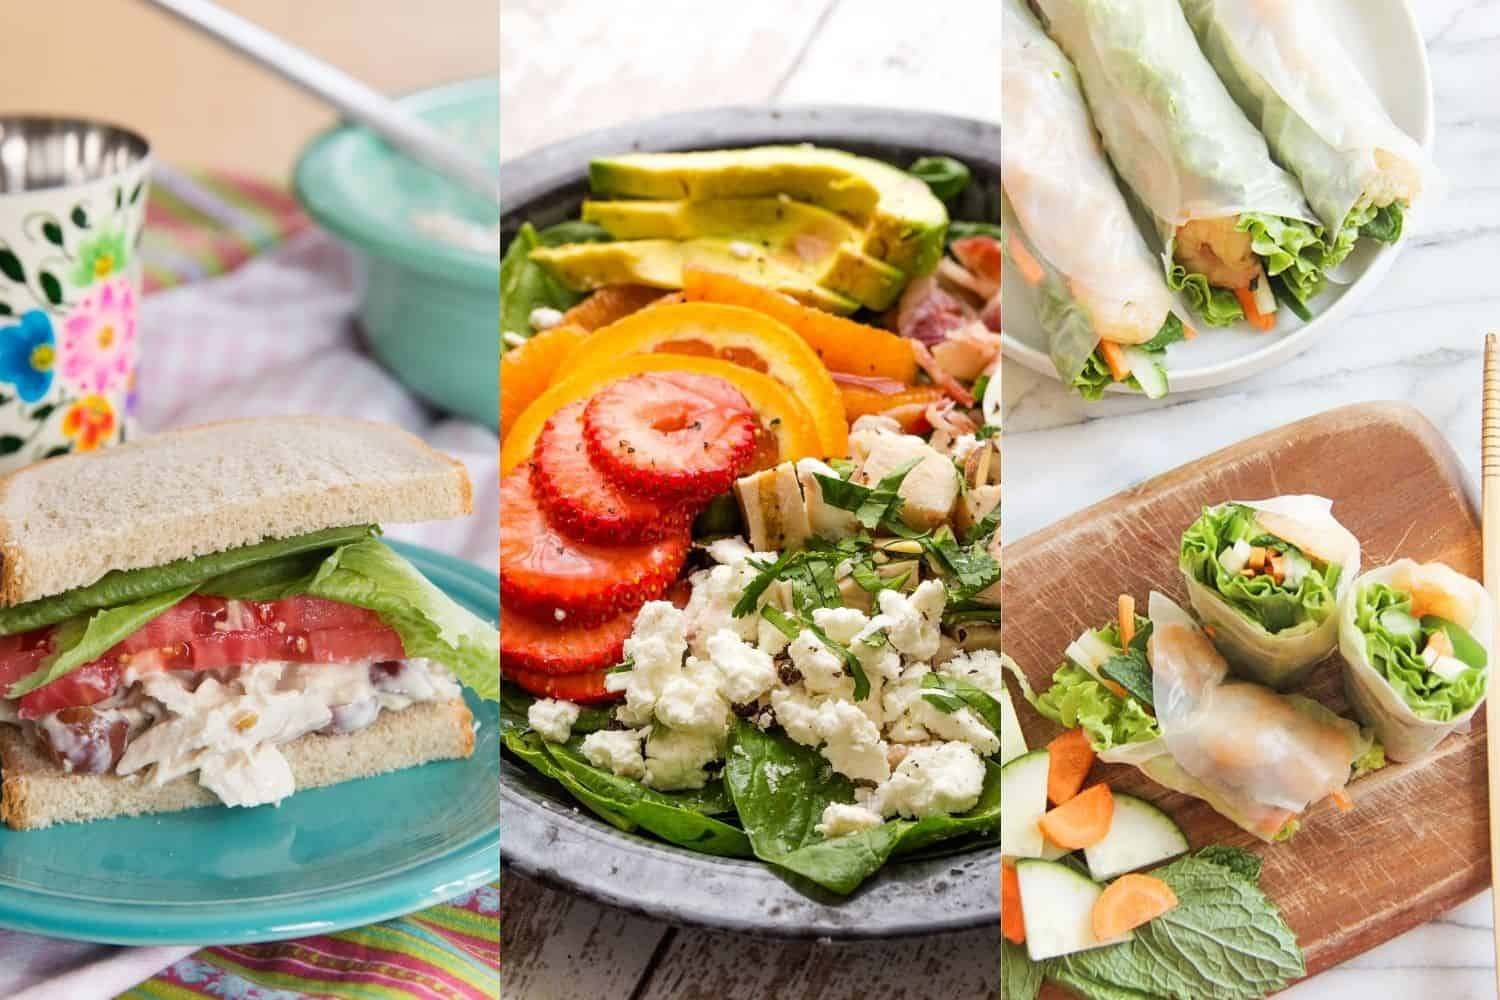 collage of a chicken salad sandwich, spinach salad with strawberries, and shrimp spring rolls